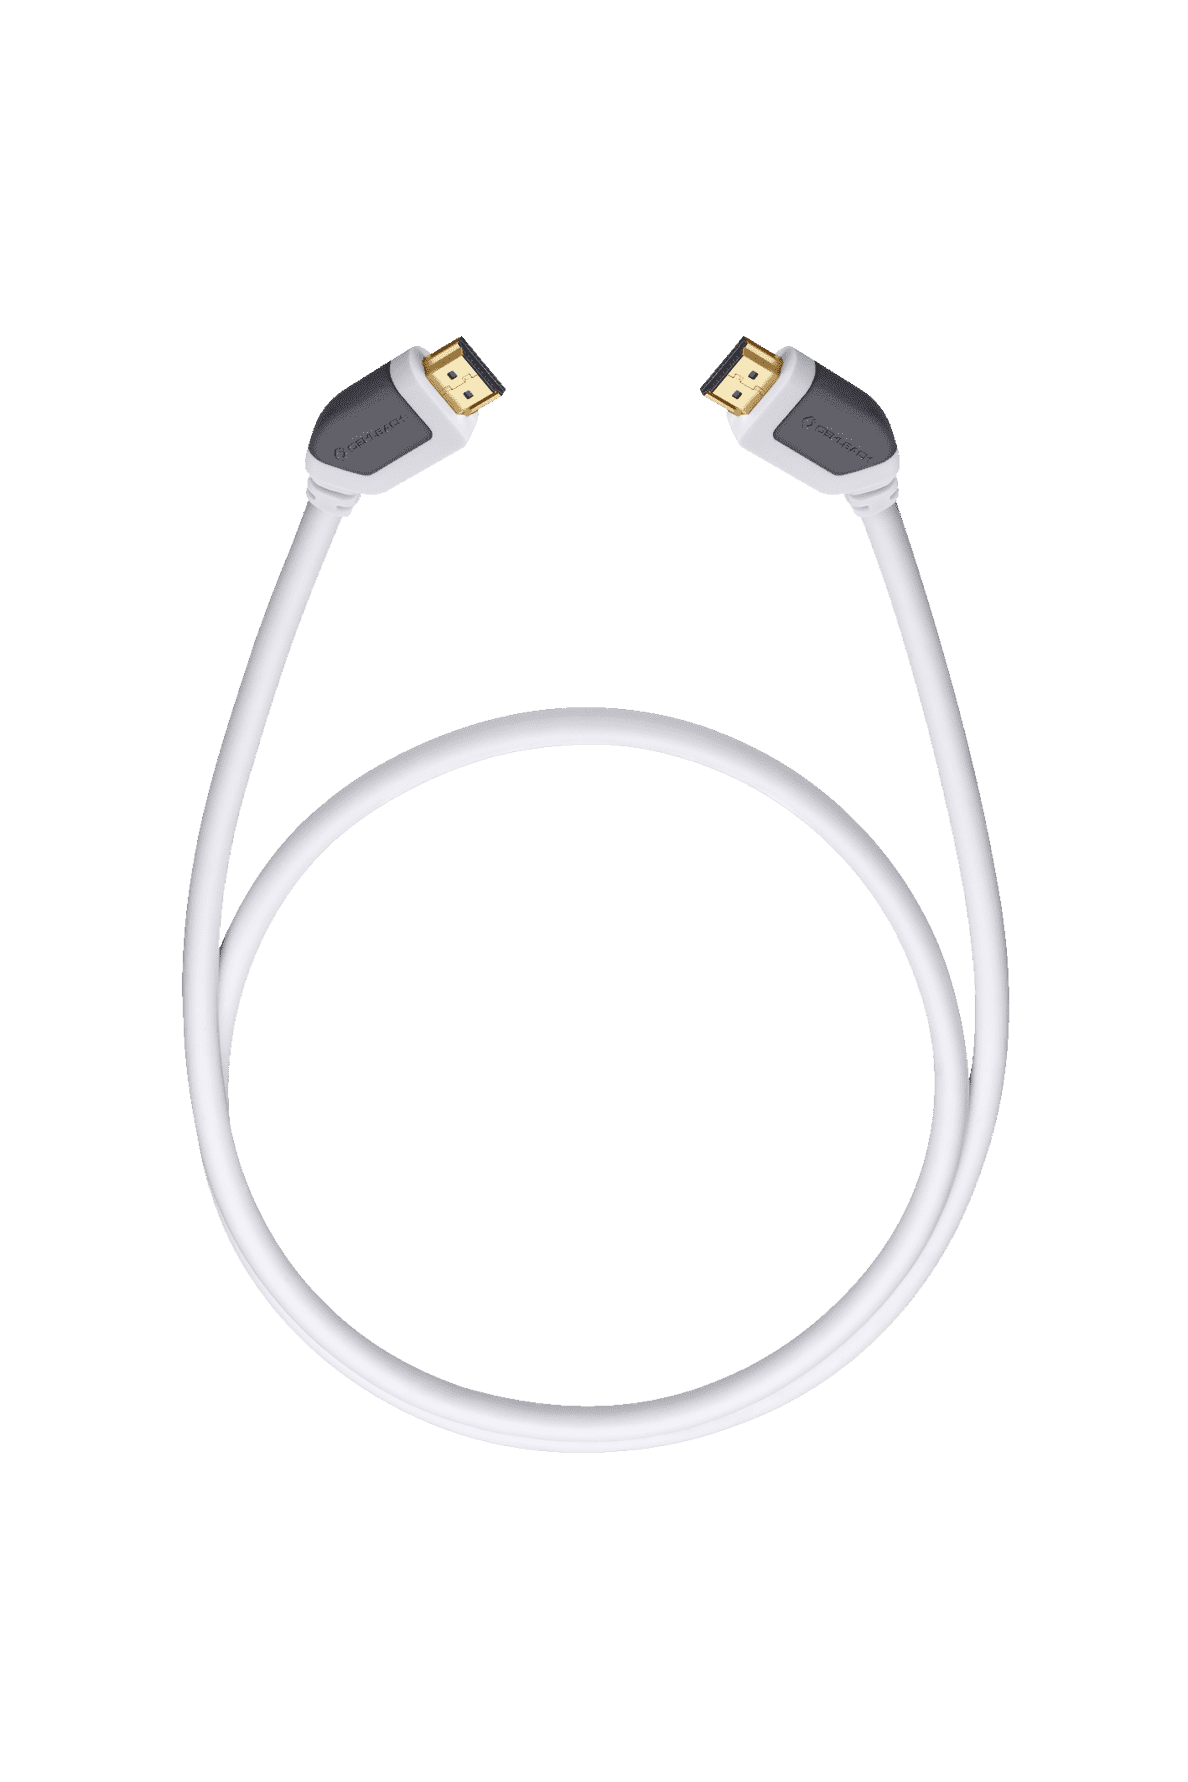 OEHLBACH 52574 SHAPE MAGIC HDMI-Kabel, 3200 mm in Weiß